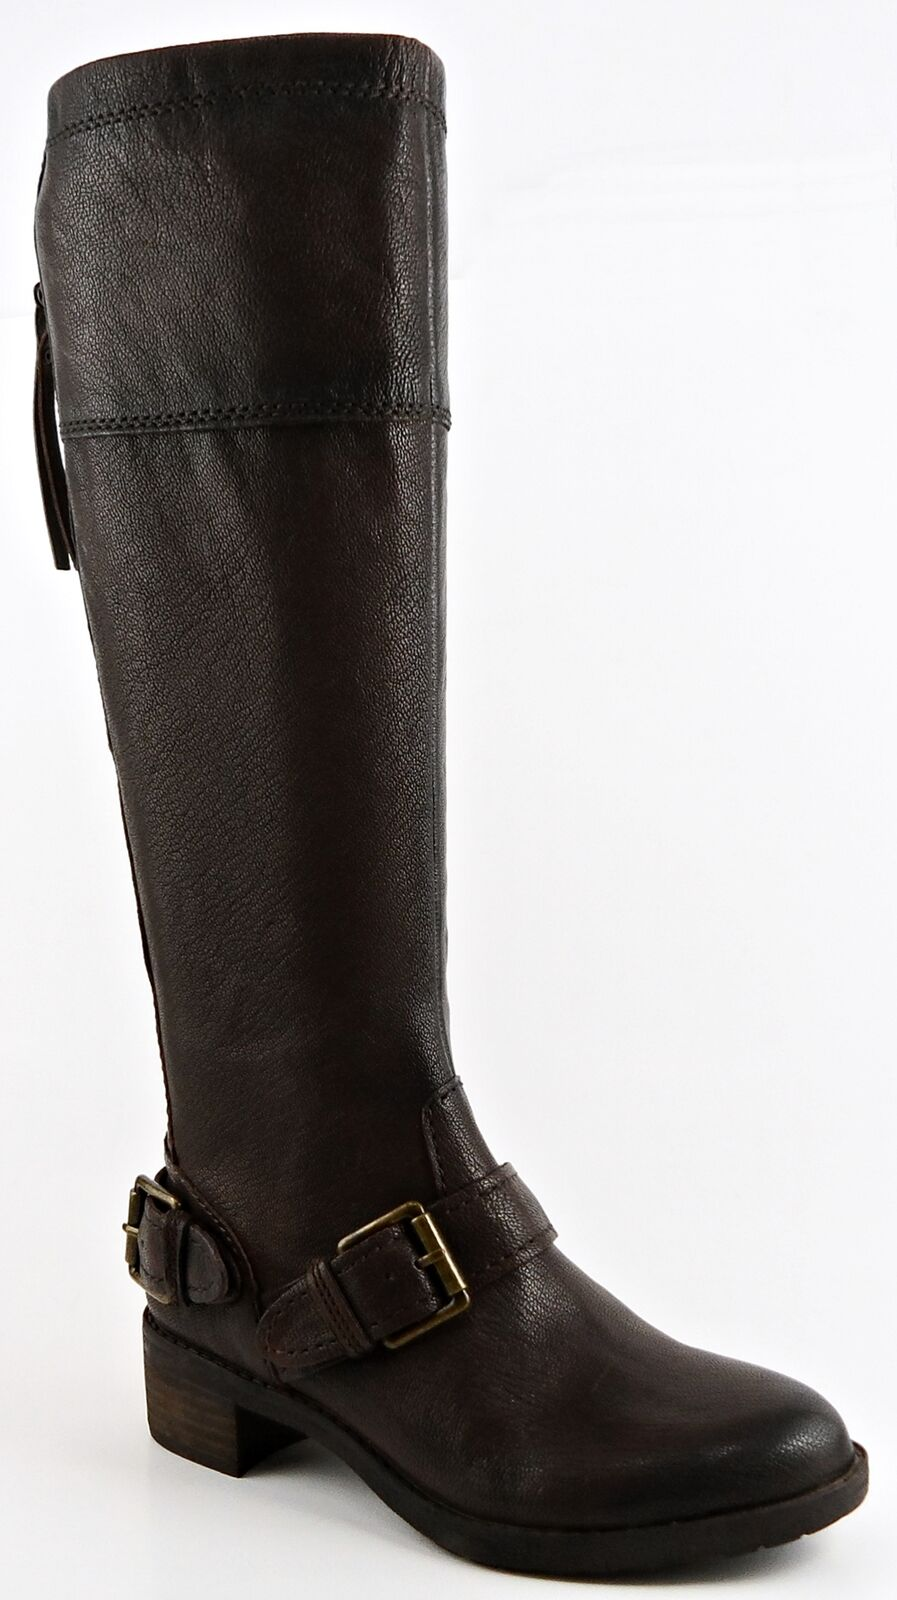 NATURALIZER MACNAIR Brown Leather Designer Boots Knee High Boots Boots Boots 4.0 M 049aac